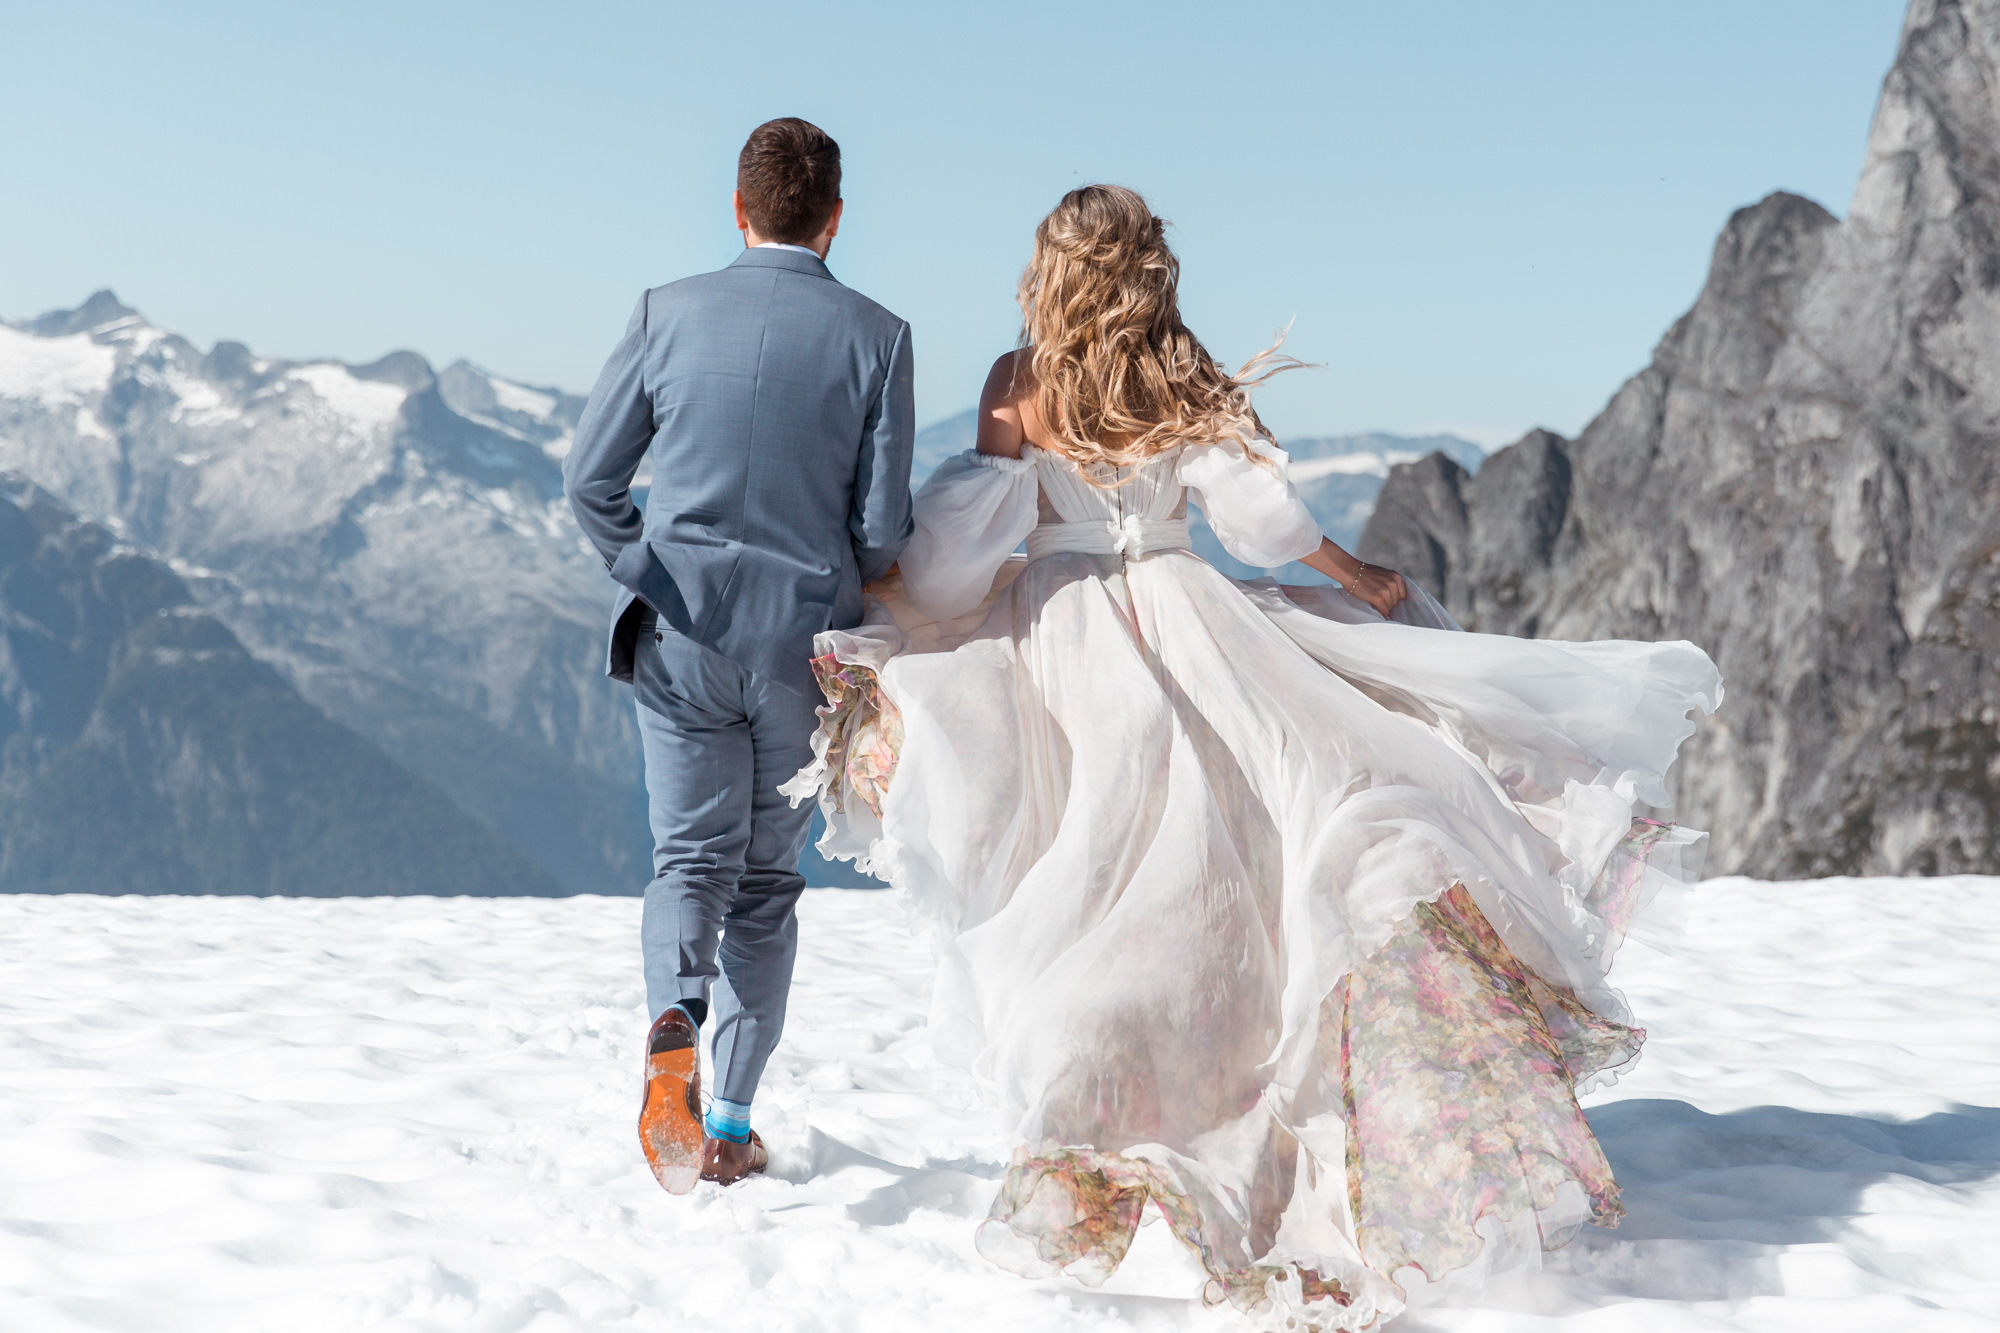 Bride and groom is running in the snow towards the mountains